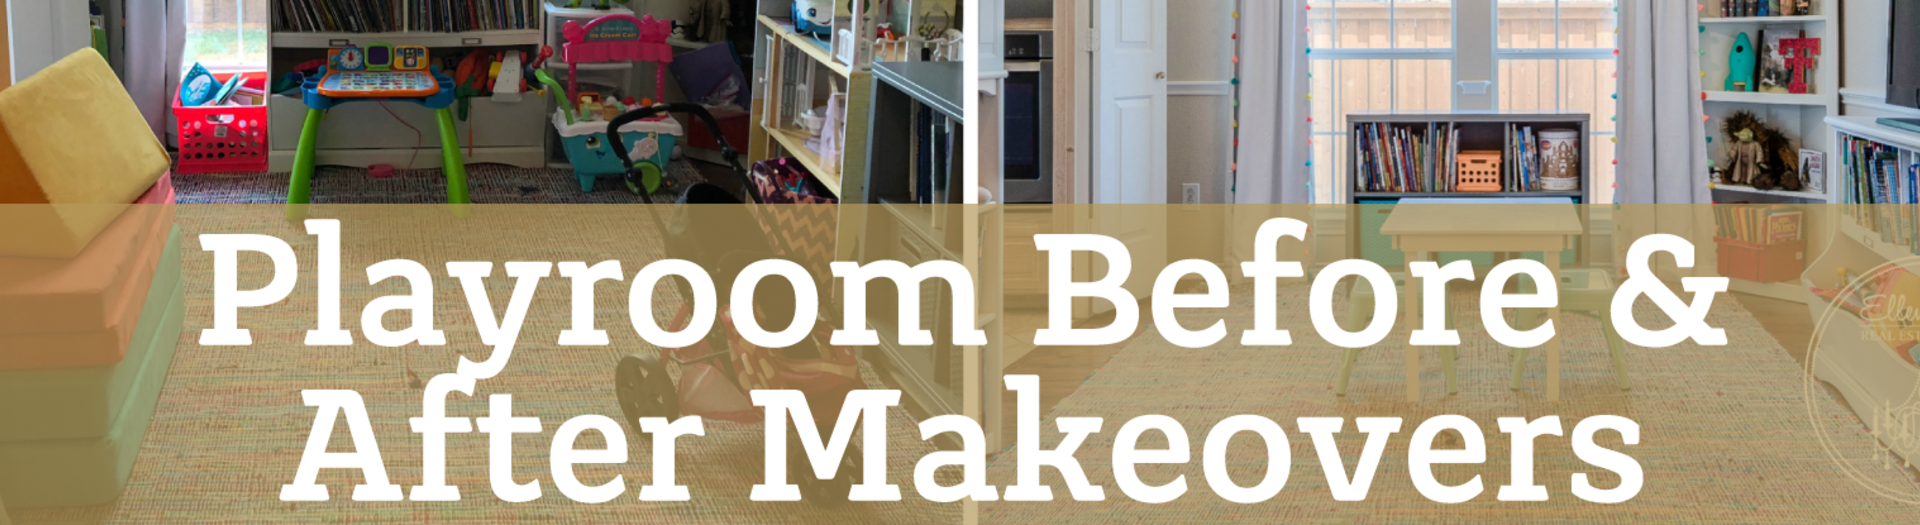 Playroom Before & After Makeovers